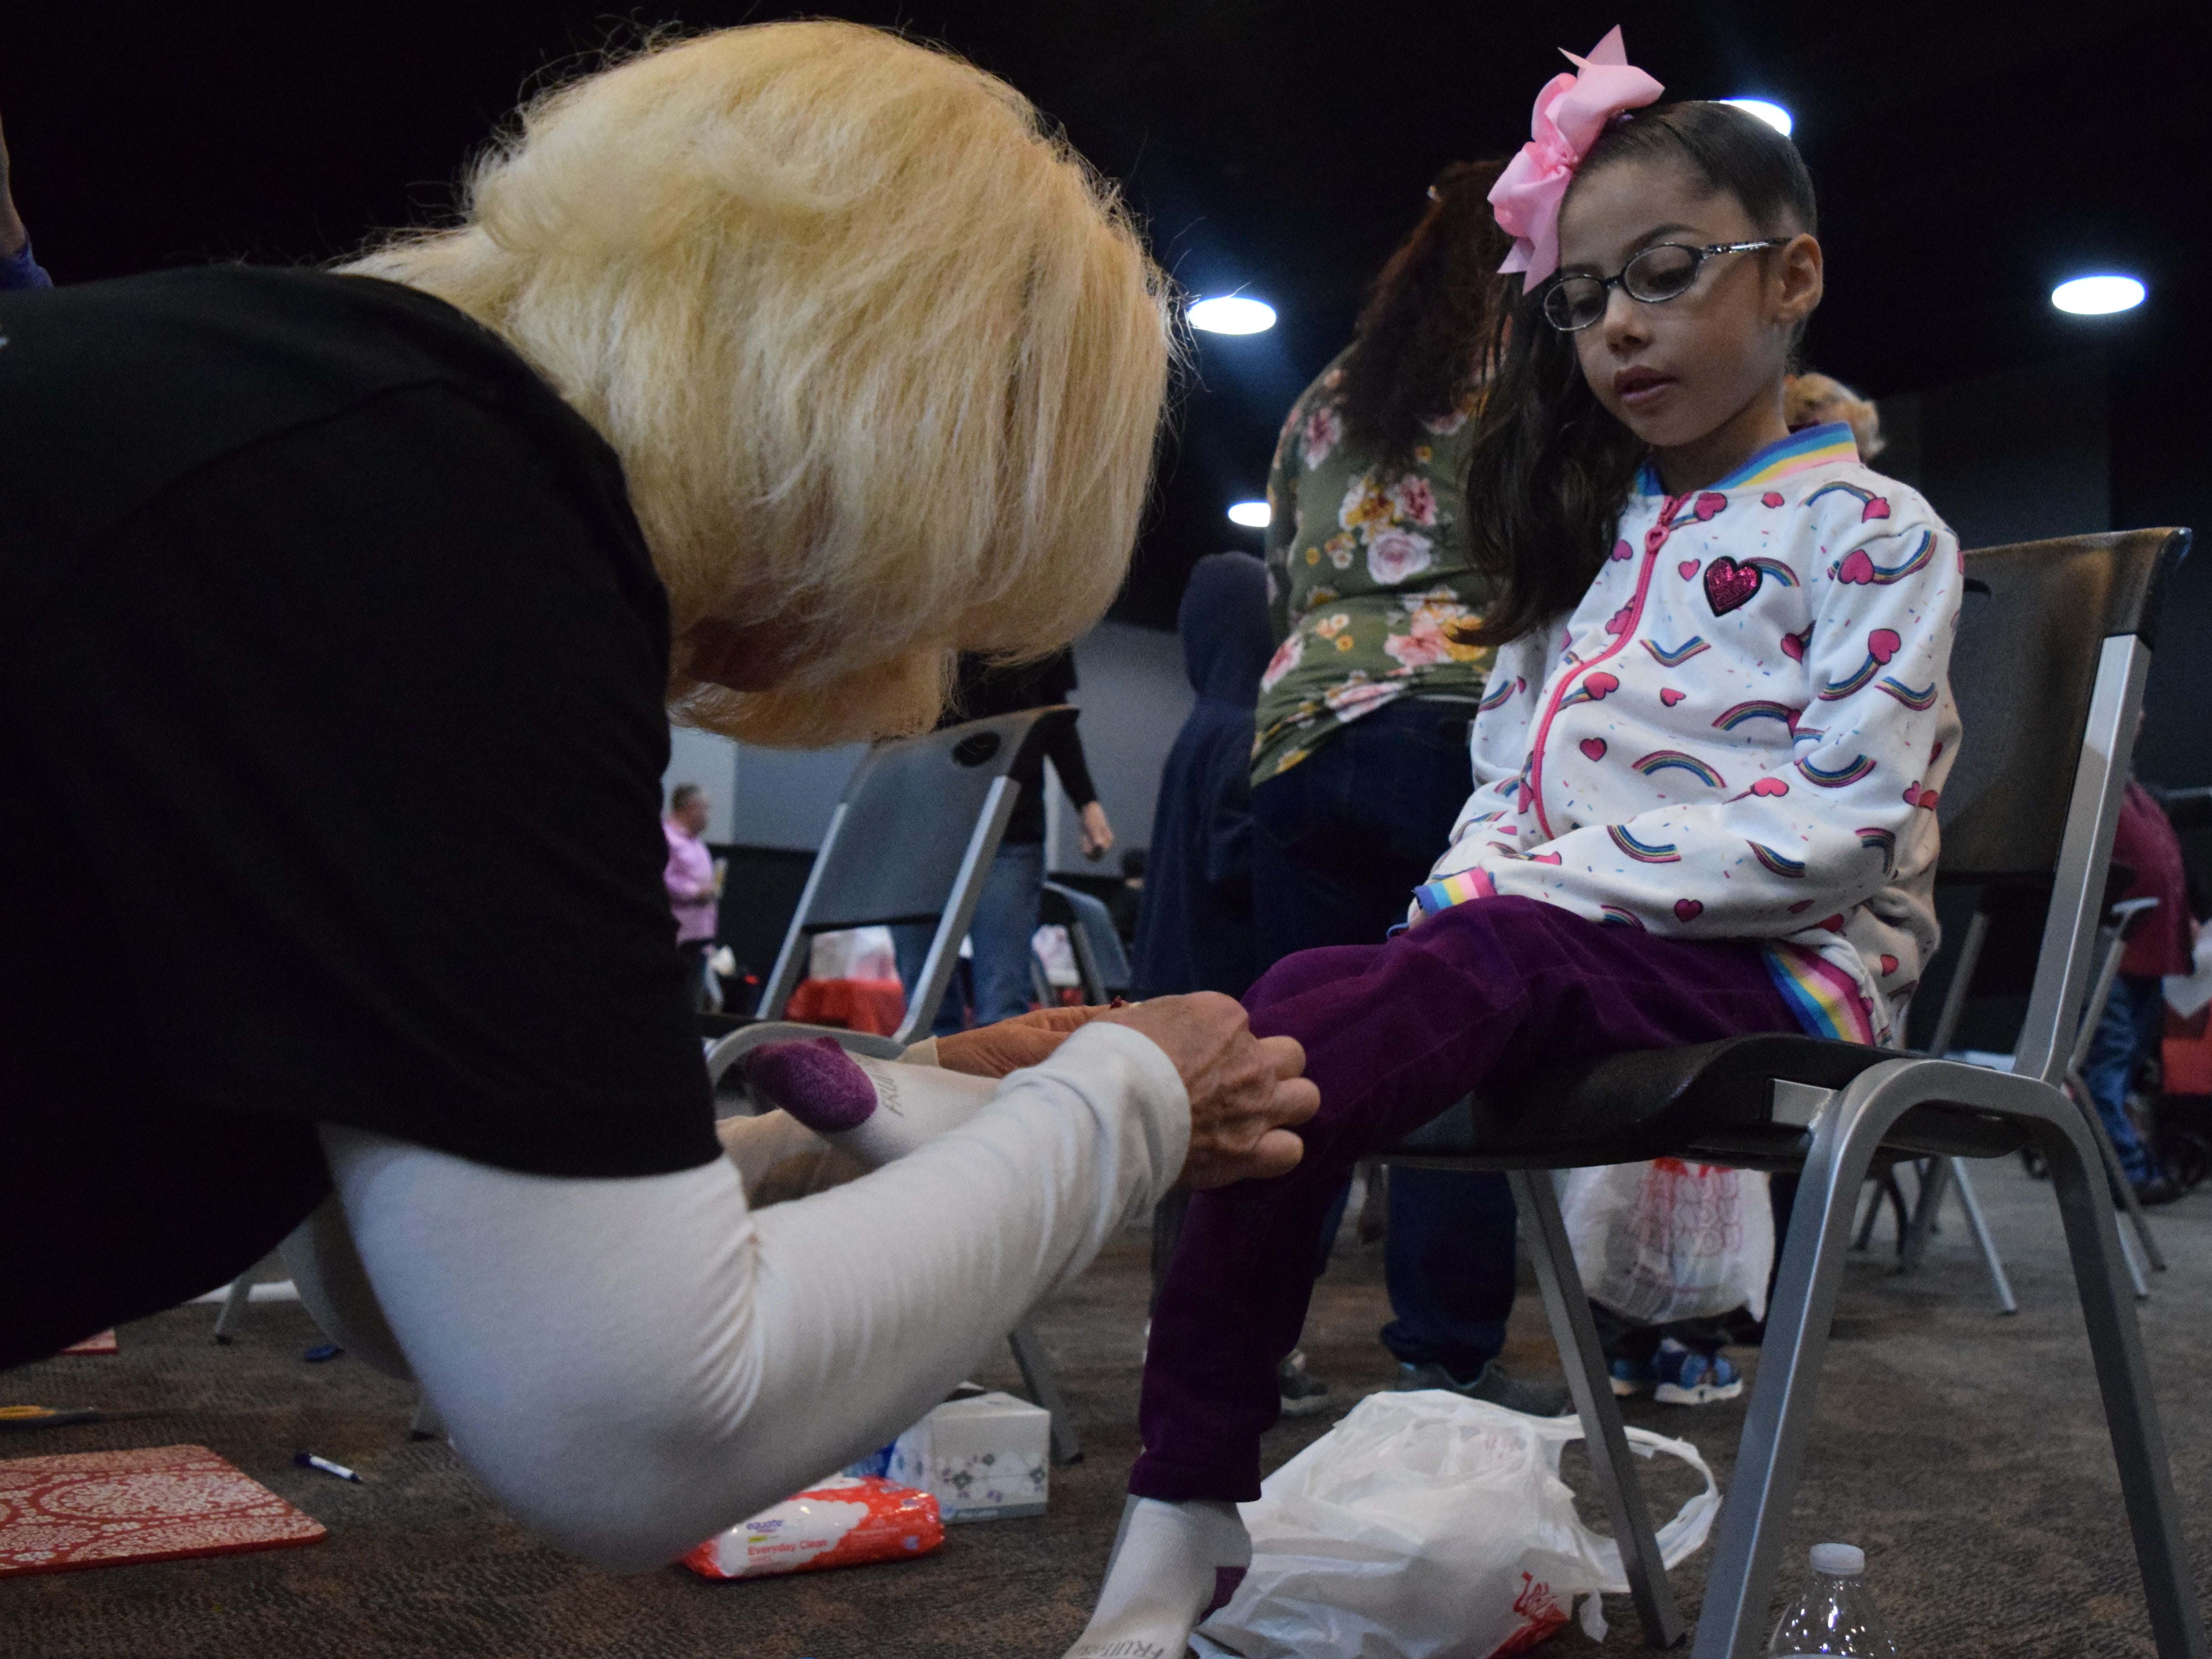 Kelly Shaffner helps put new shoes on Azariah Misquez, 6, at the Soles4Souls event on Saturday, March 9, 2019 at a Las Cruces church.